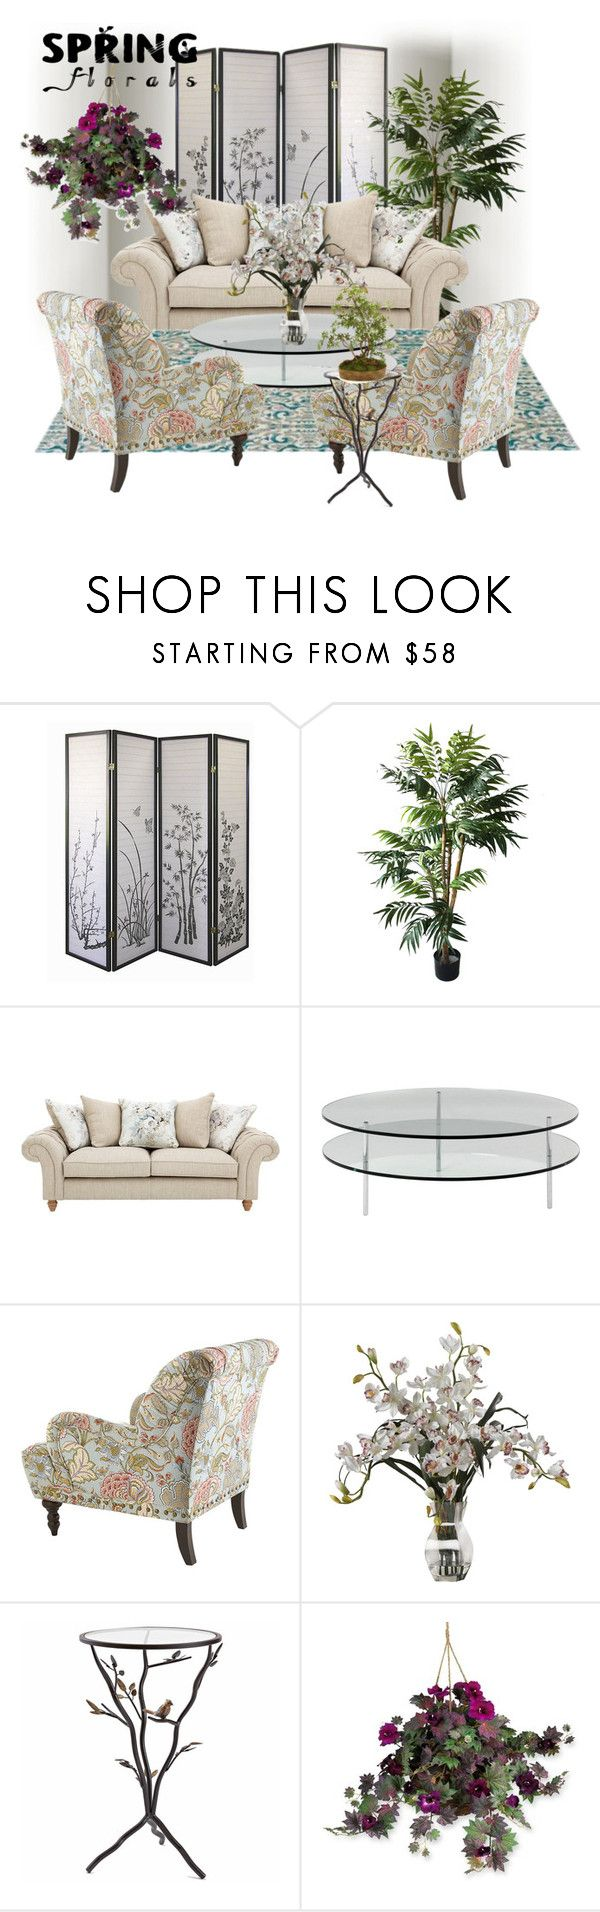 """sitting room"" by daincyng ❤ liked on Polyvore featuring interior, interiors, interior design, home, home decor, interior decorating, International, TradeMark, SCP and Pier 1 Imports"